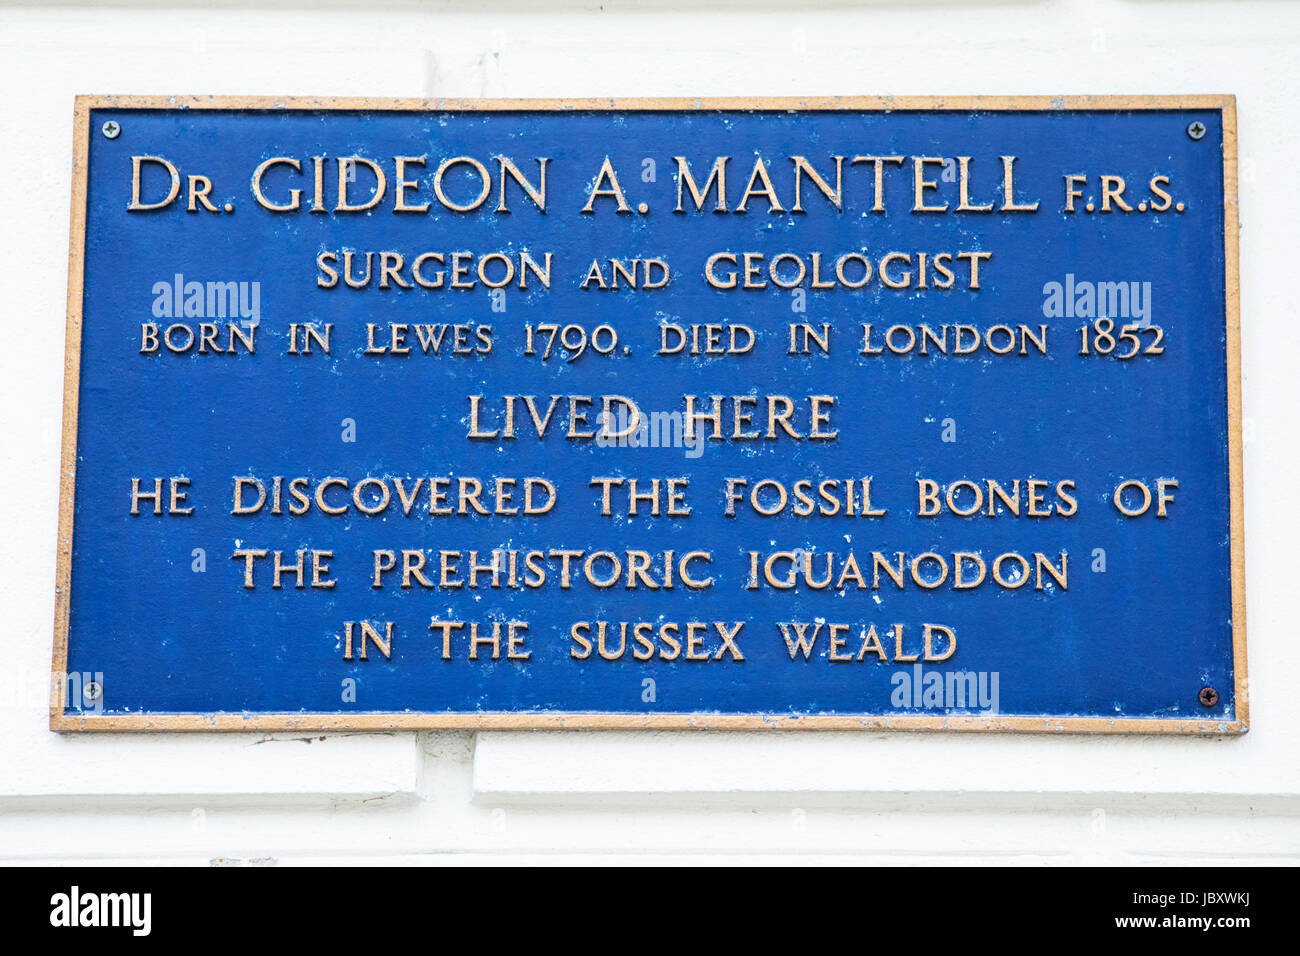 LEWES, UK - MAY 31ST 2017: A plaque marking the location where Dr. Gideon A. Mantell lived in Lewes, East Sussex, - Stock Image